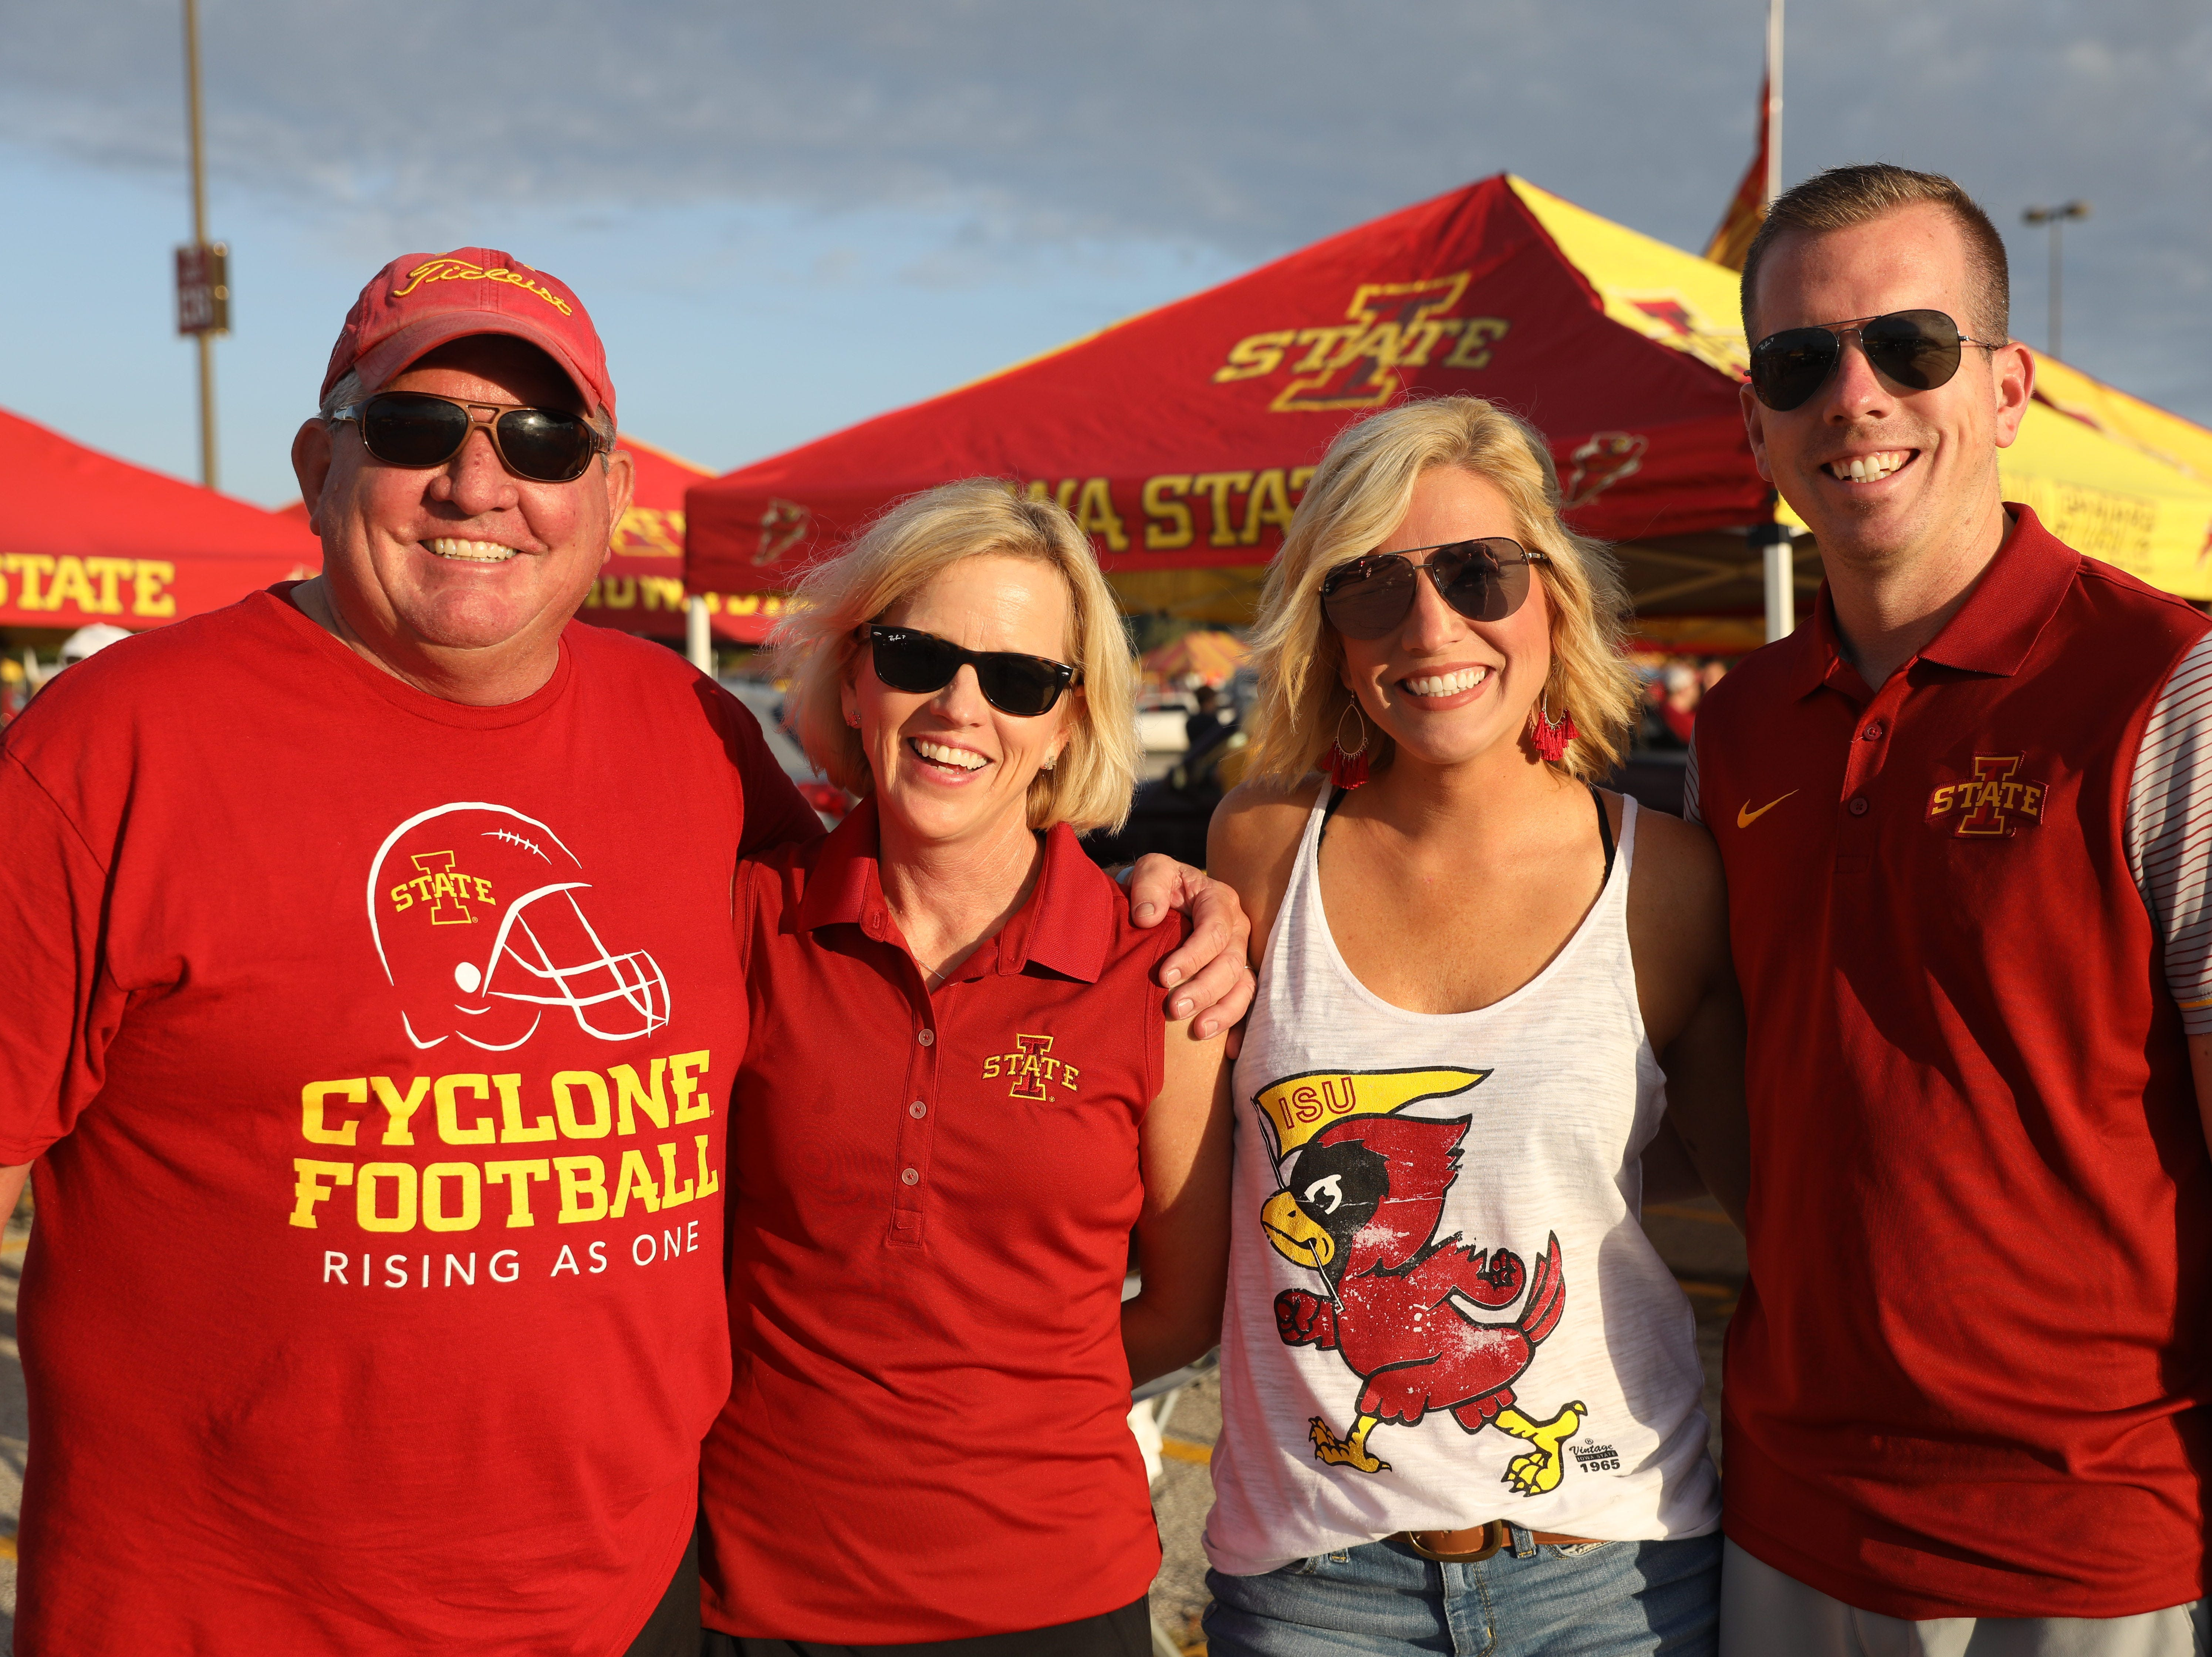 Ron Lickteig (from left), Linda Lickteig, both of Johnston, Jen Cross of Ankeny and John Lickteig of Clive Saturday, Sept. 15, 2018, before the Iowa State football game against Oklahoma in Ames.